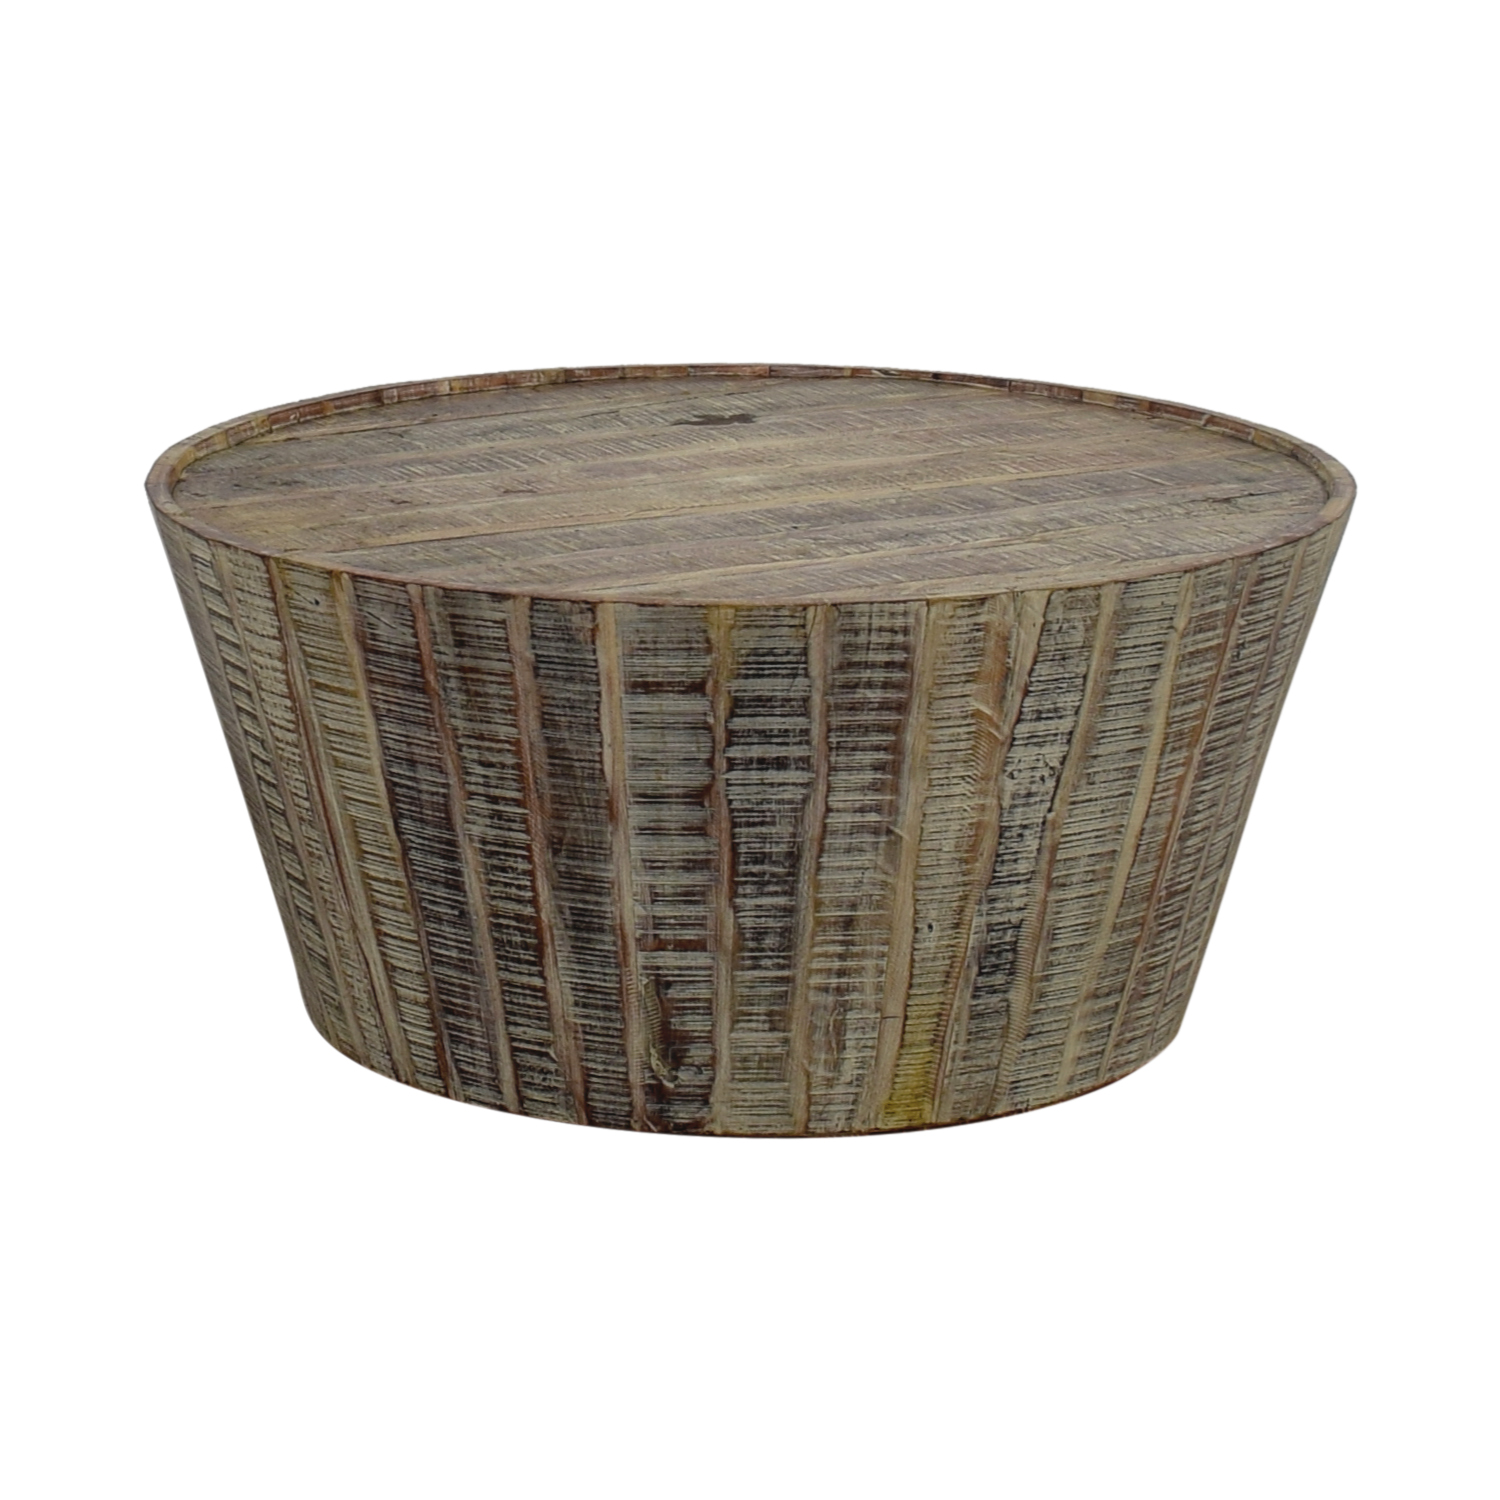 74 OFF West Elm West Elm Rustic Beech Wood Round Coffee Table